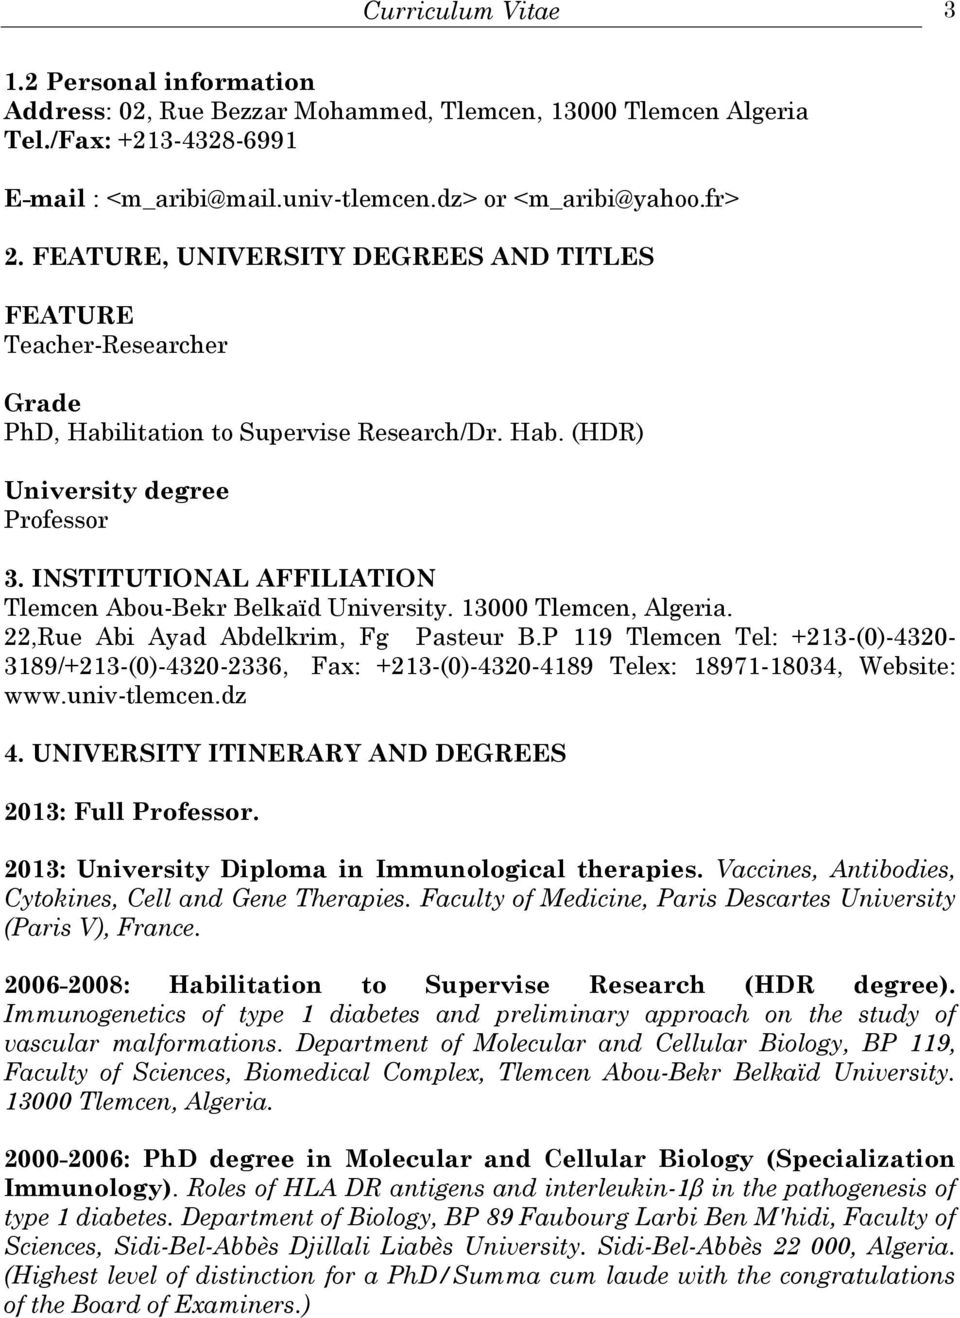 INSTITUTIONAL AFFILIATION Tlemcen Abou-Bekr Belkaïd University. 13000. 22,Rue Abi Ayad Abdelkrim, Fg Pasteur B.